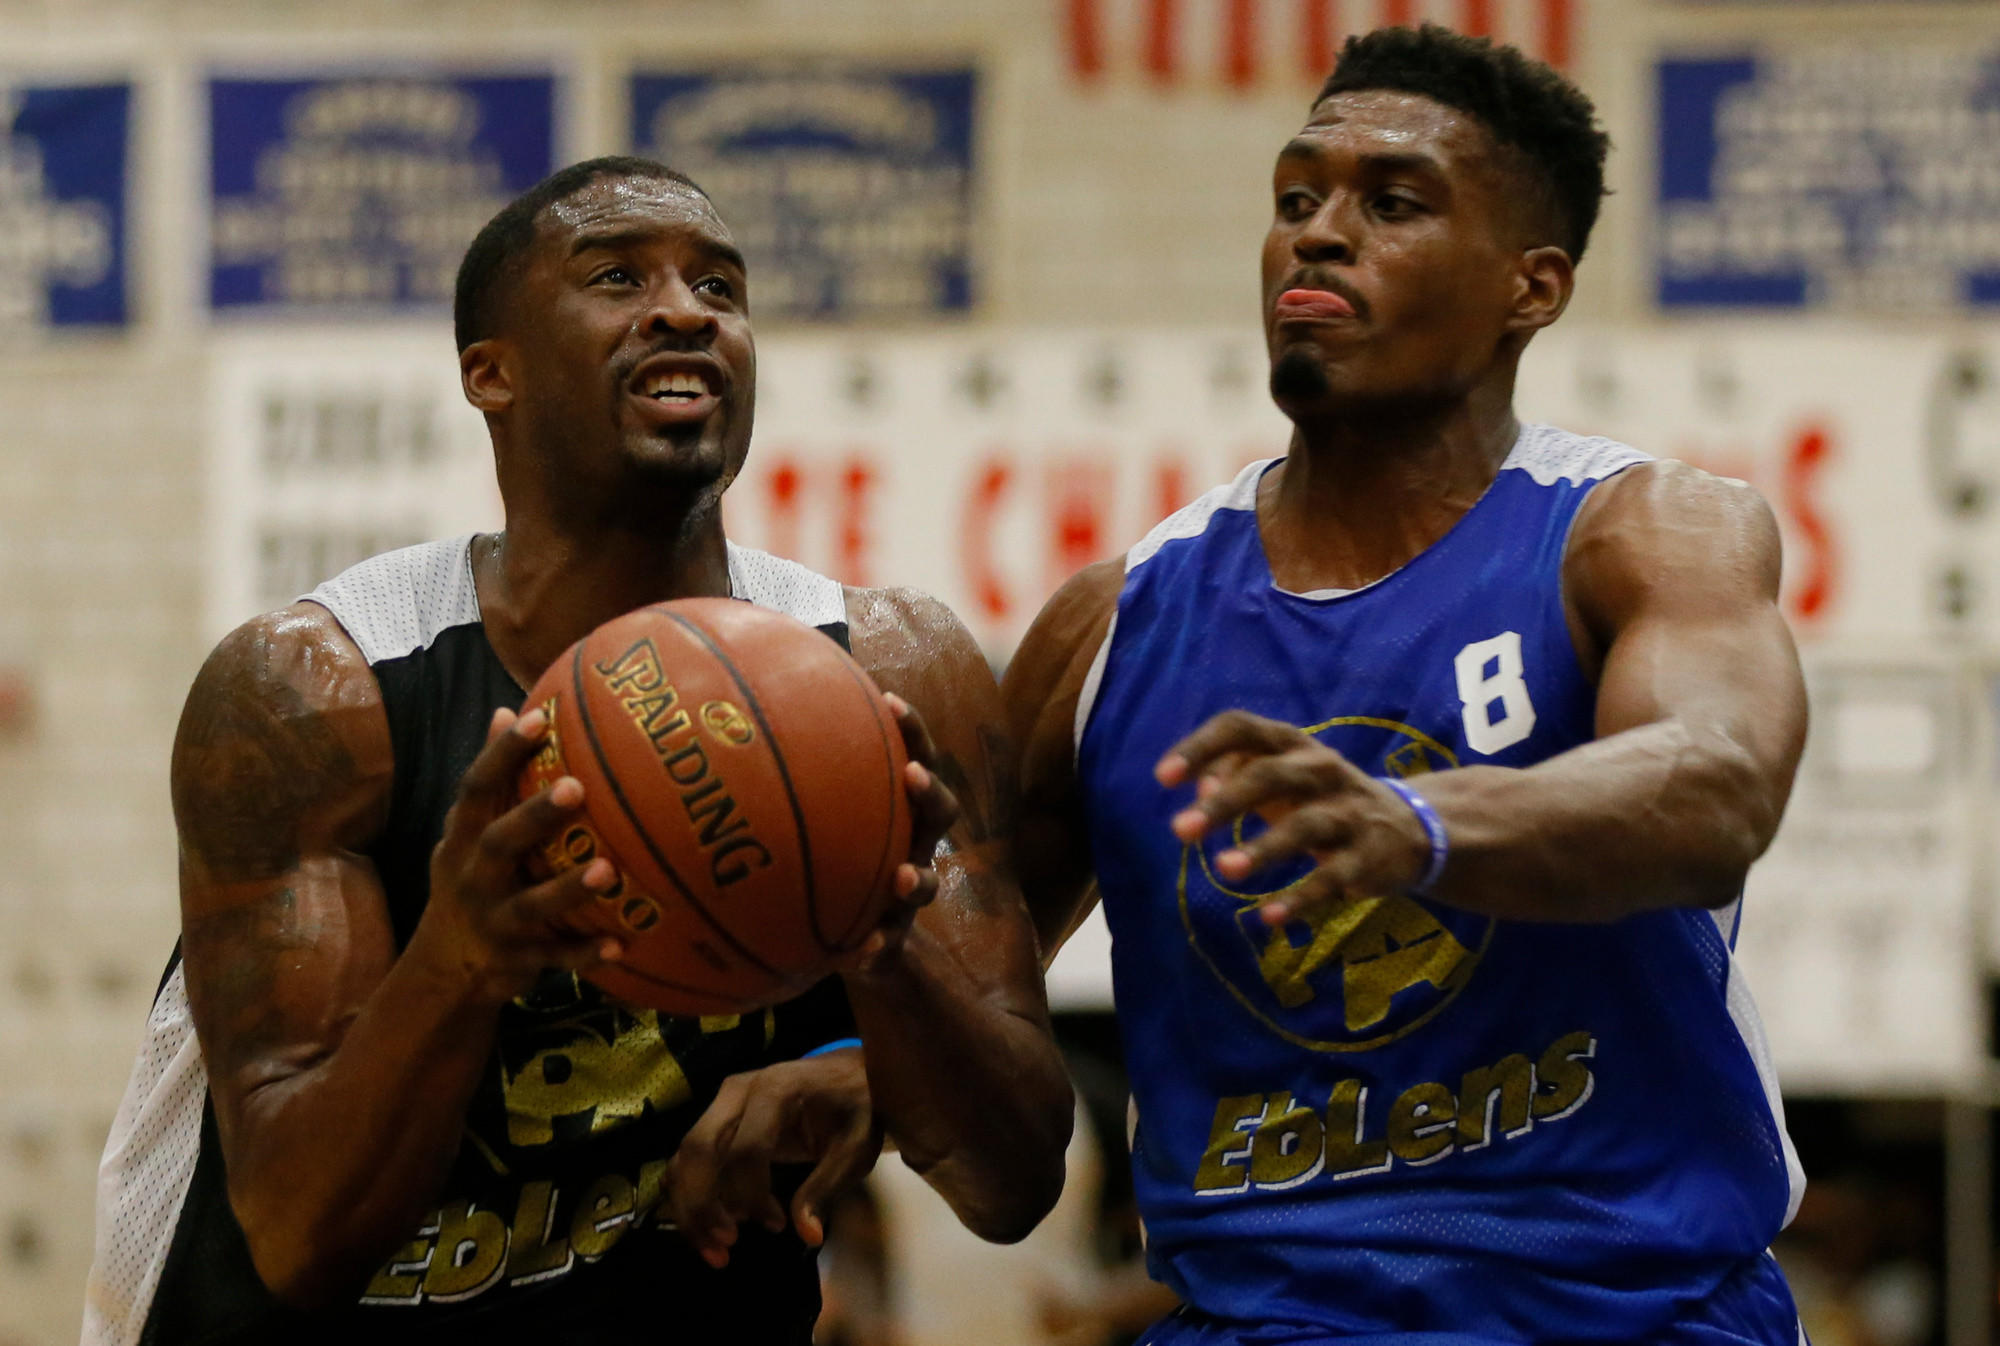 Waterbury, CT 07/09/14; NBA Portland Trail Blazers player Wesley Matthews drives the ball against Brandon Sherrod in the Greater Hartford Pro-Am Summer Basketball League opening night at Crosby High School. photo by David Butler II